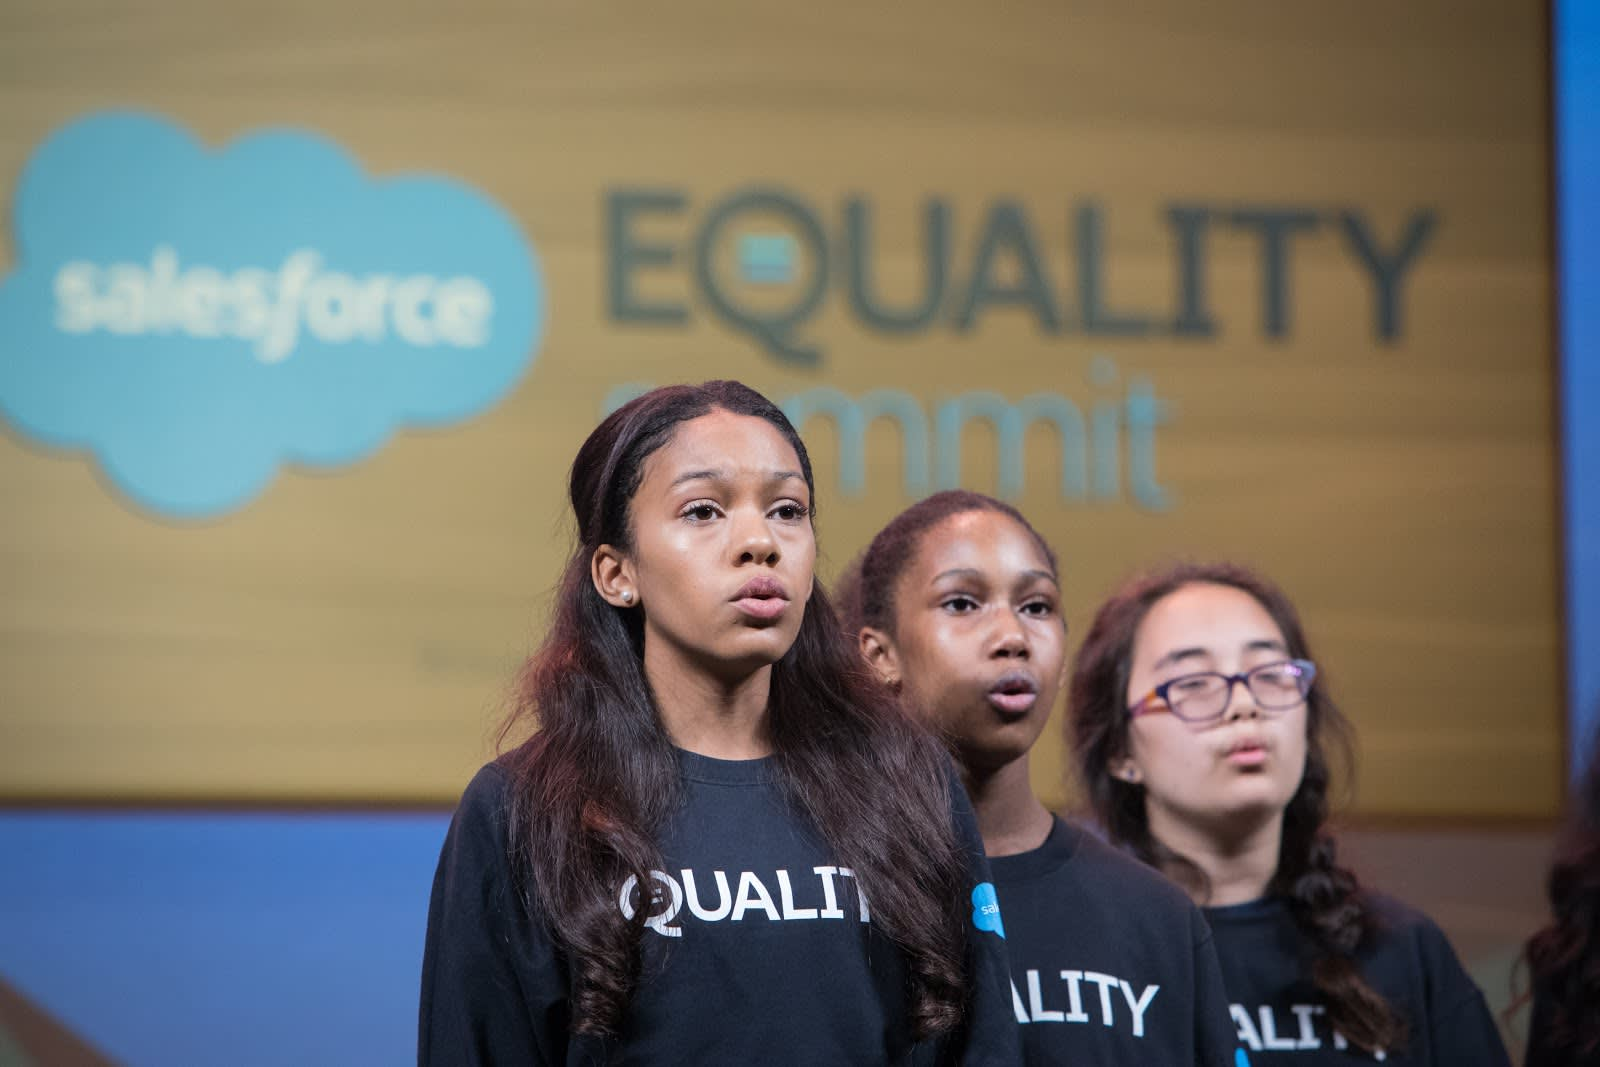 The opening of the Equality Keynote involved a choir.